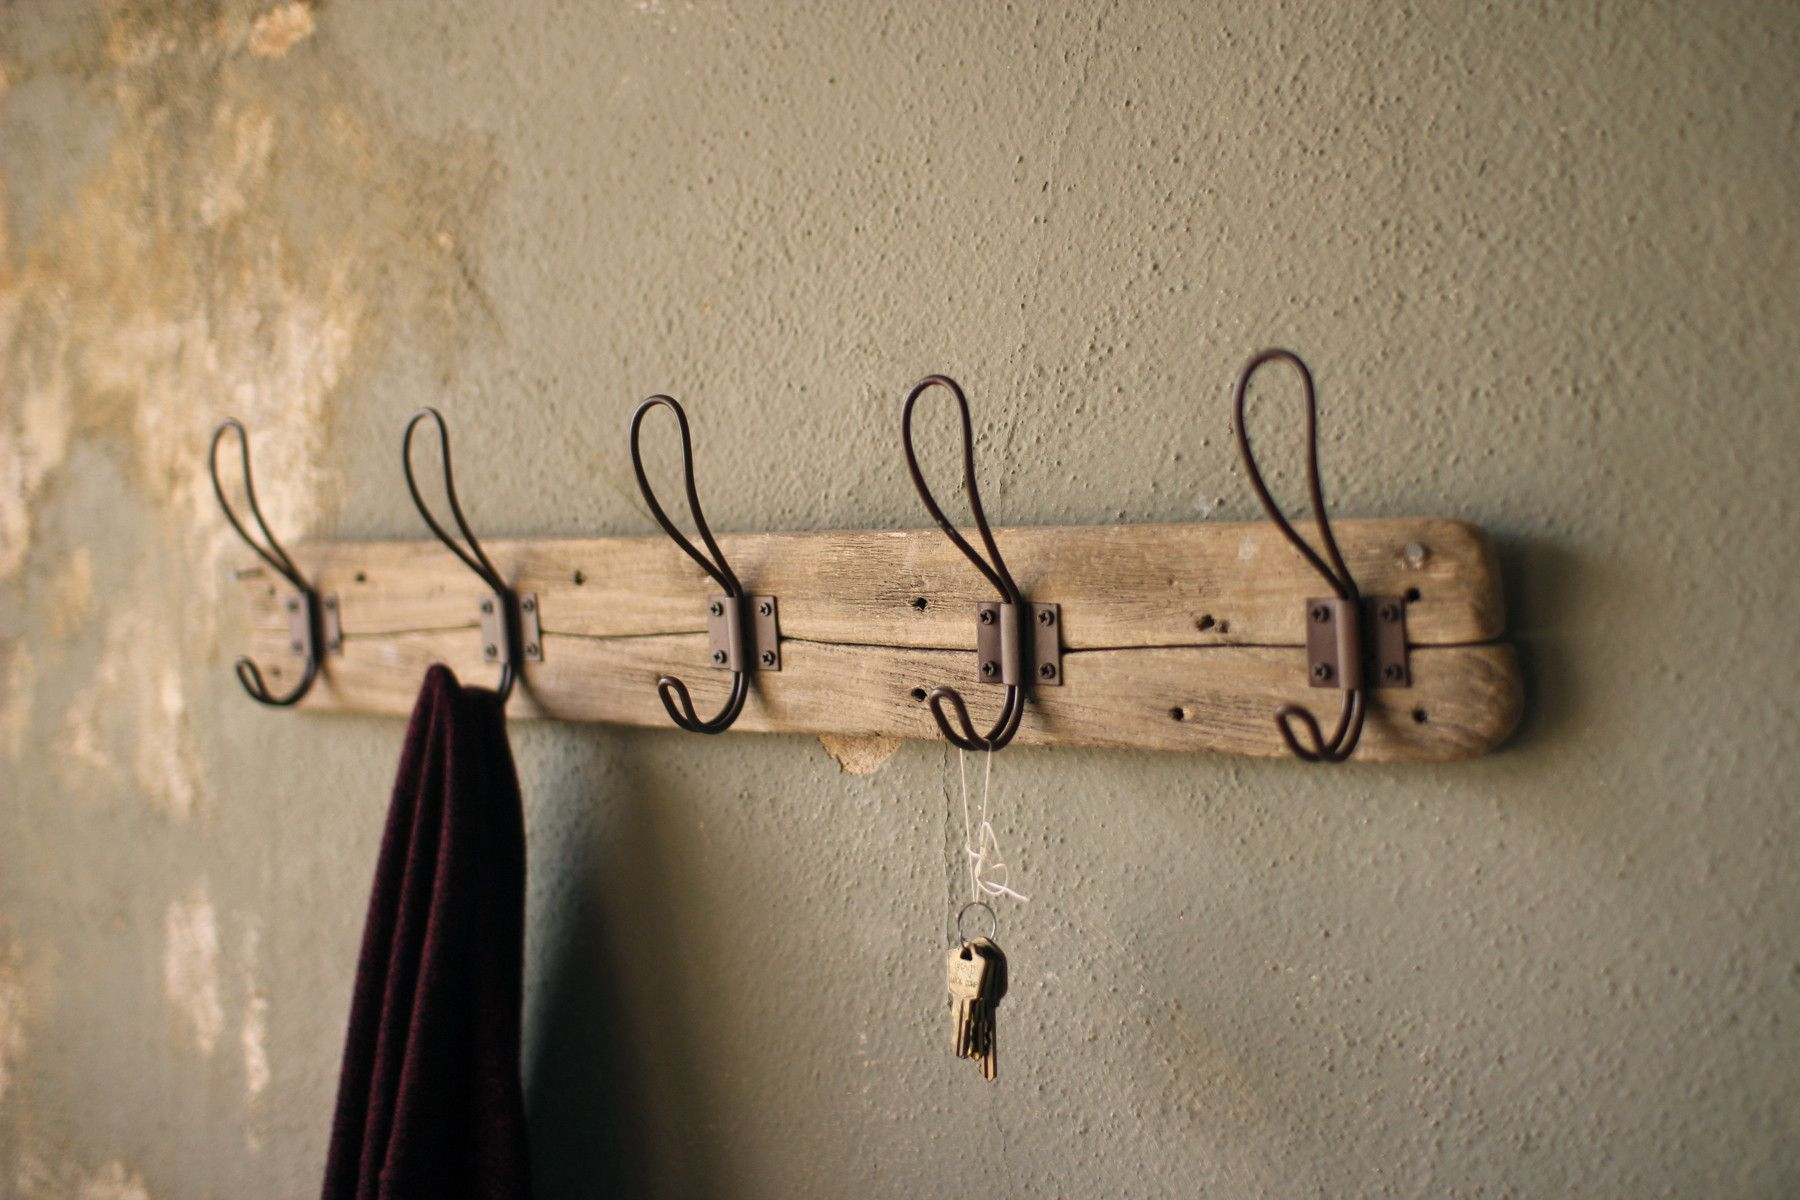 Kalalou Recycled Wooden Coat Rack With Rustic Hooks In 2020 Rustic Coat Rack Wooden Coat Rack Rustic Hook